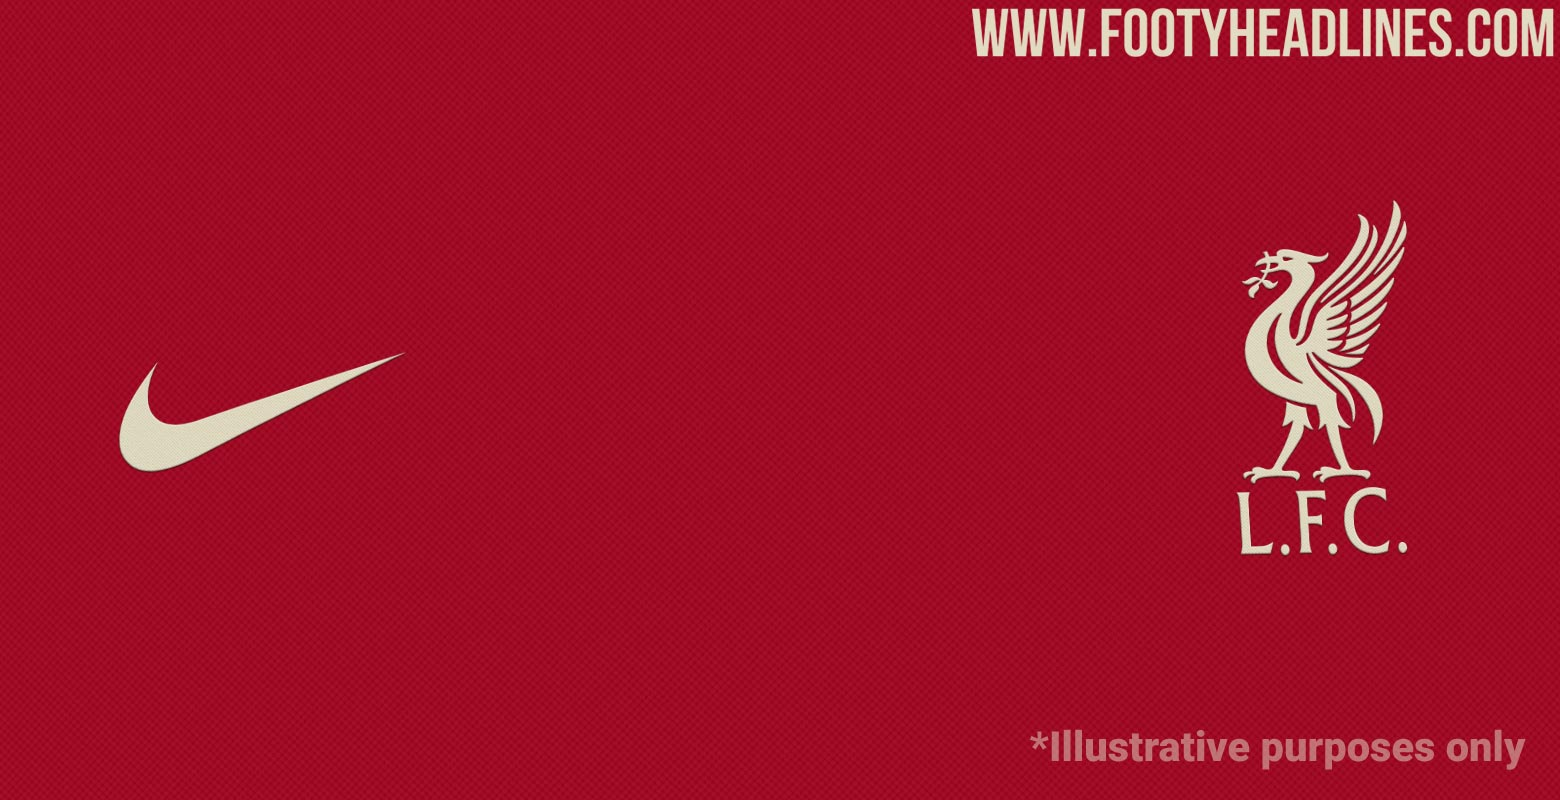 Liverpool 21-22 Home & Away Kit 'Predictions' - First Fakes Floating Around - Footy Headlines